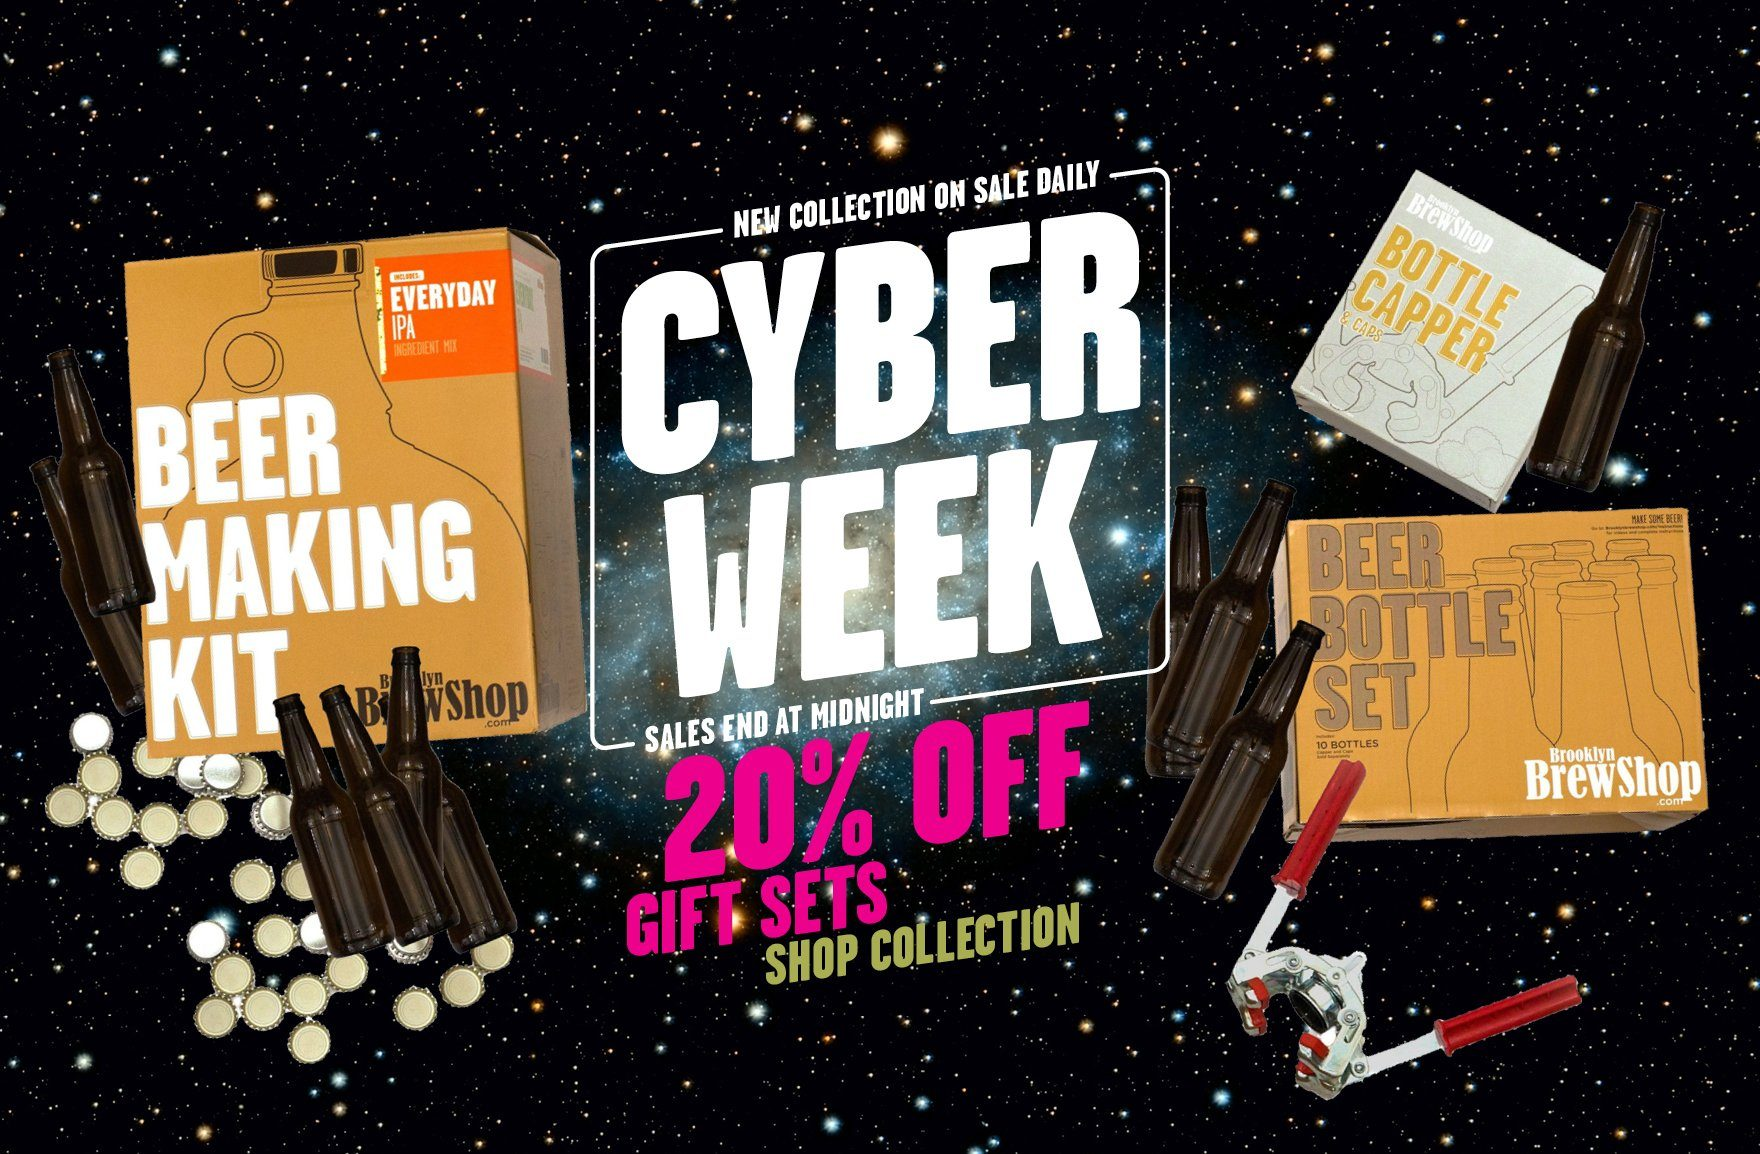 Cyber Week Sale 2019: 20% Off All Gift Sets